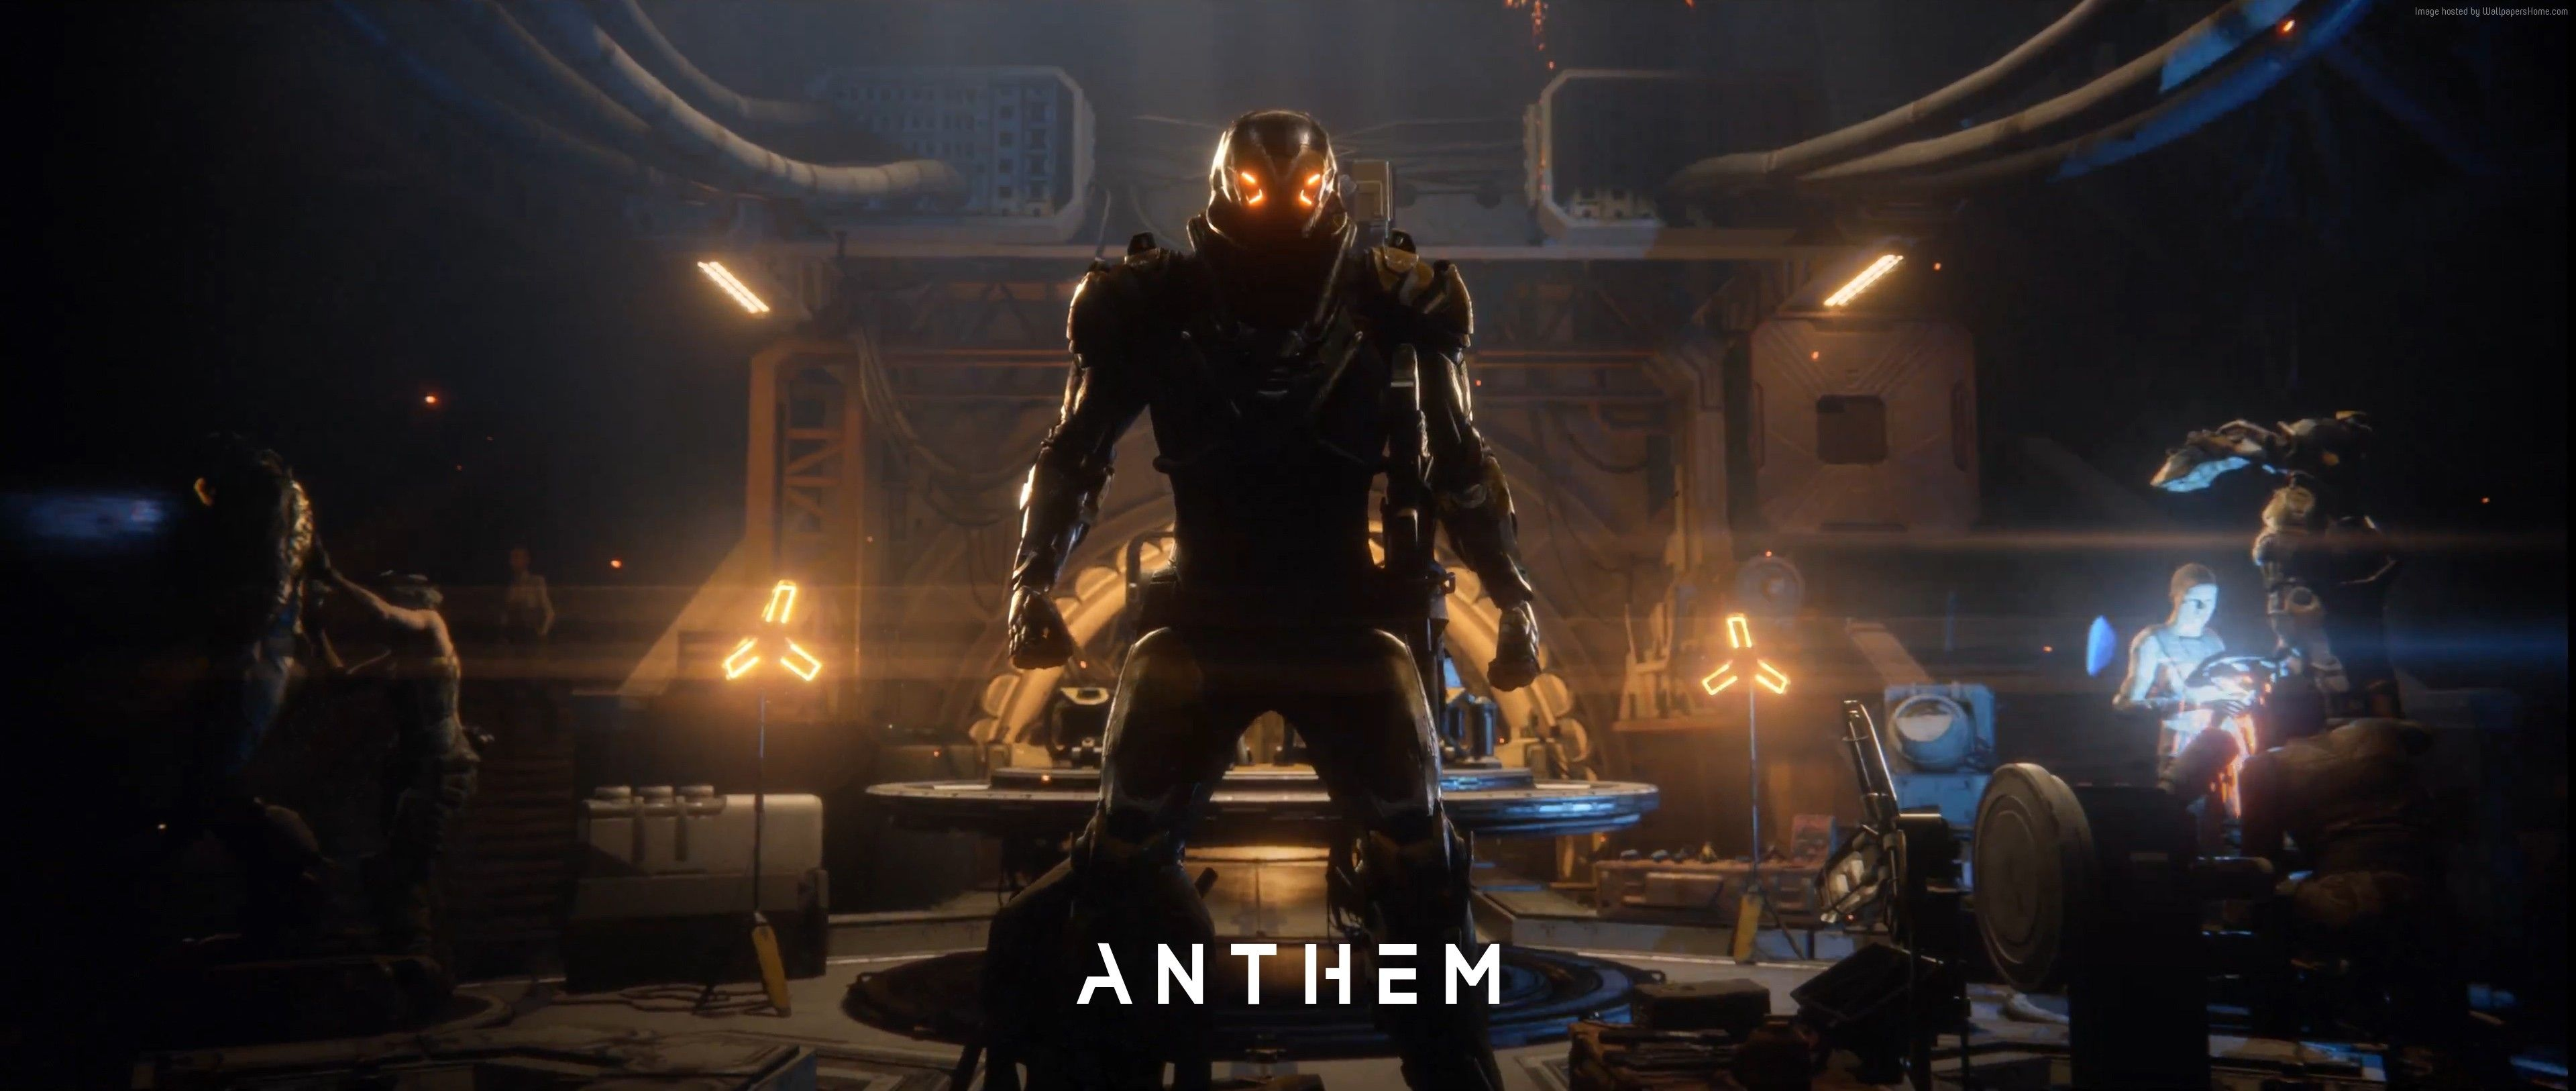 Anthem Game Wallpapers - Top Free Anthem Game Backgrounds ...